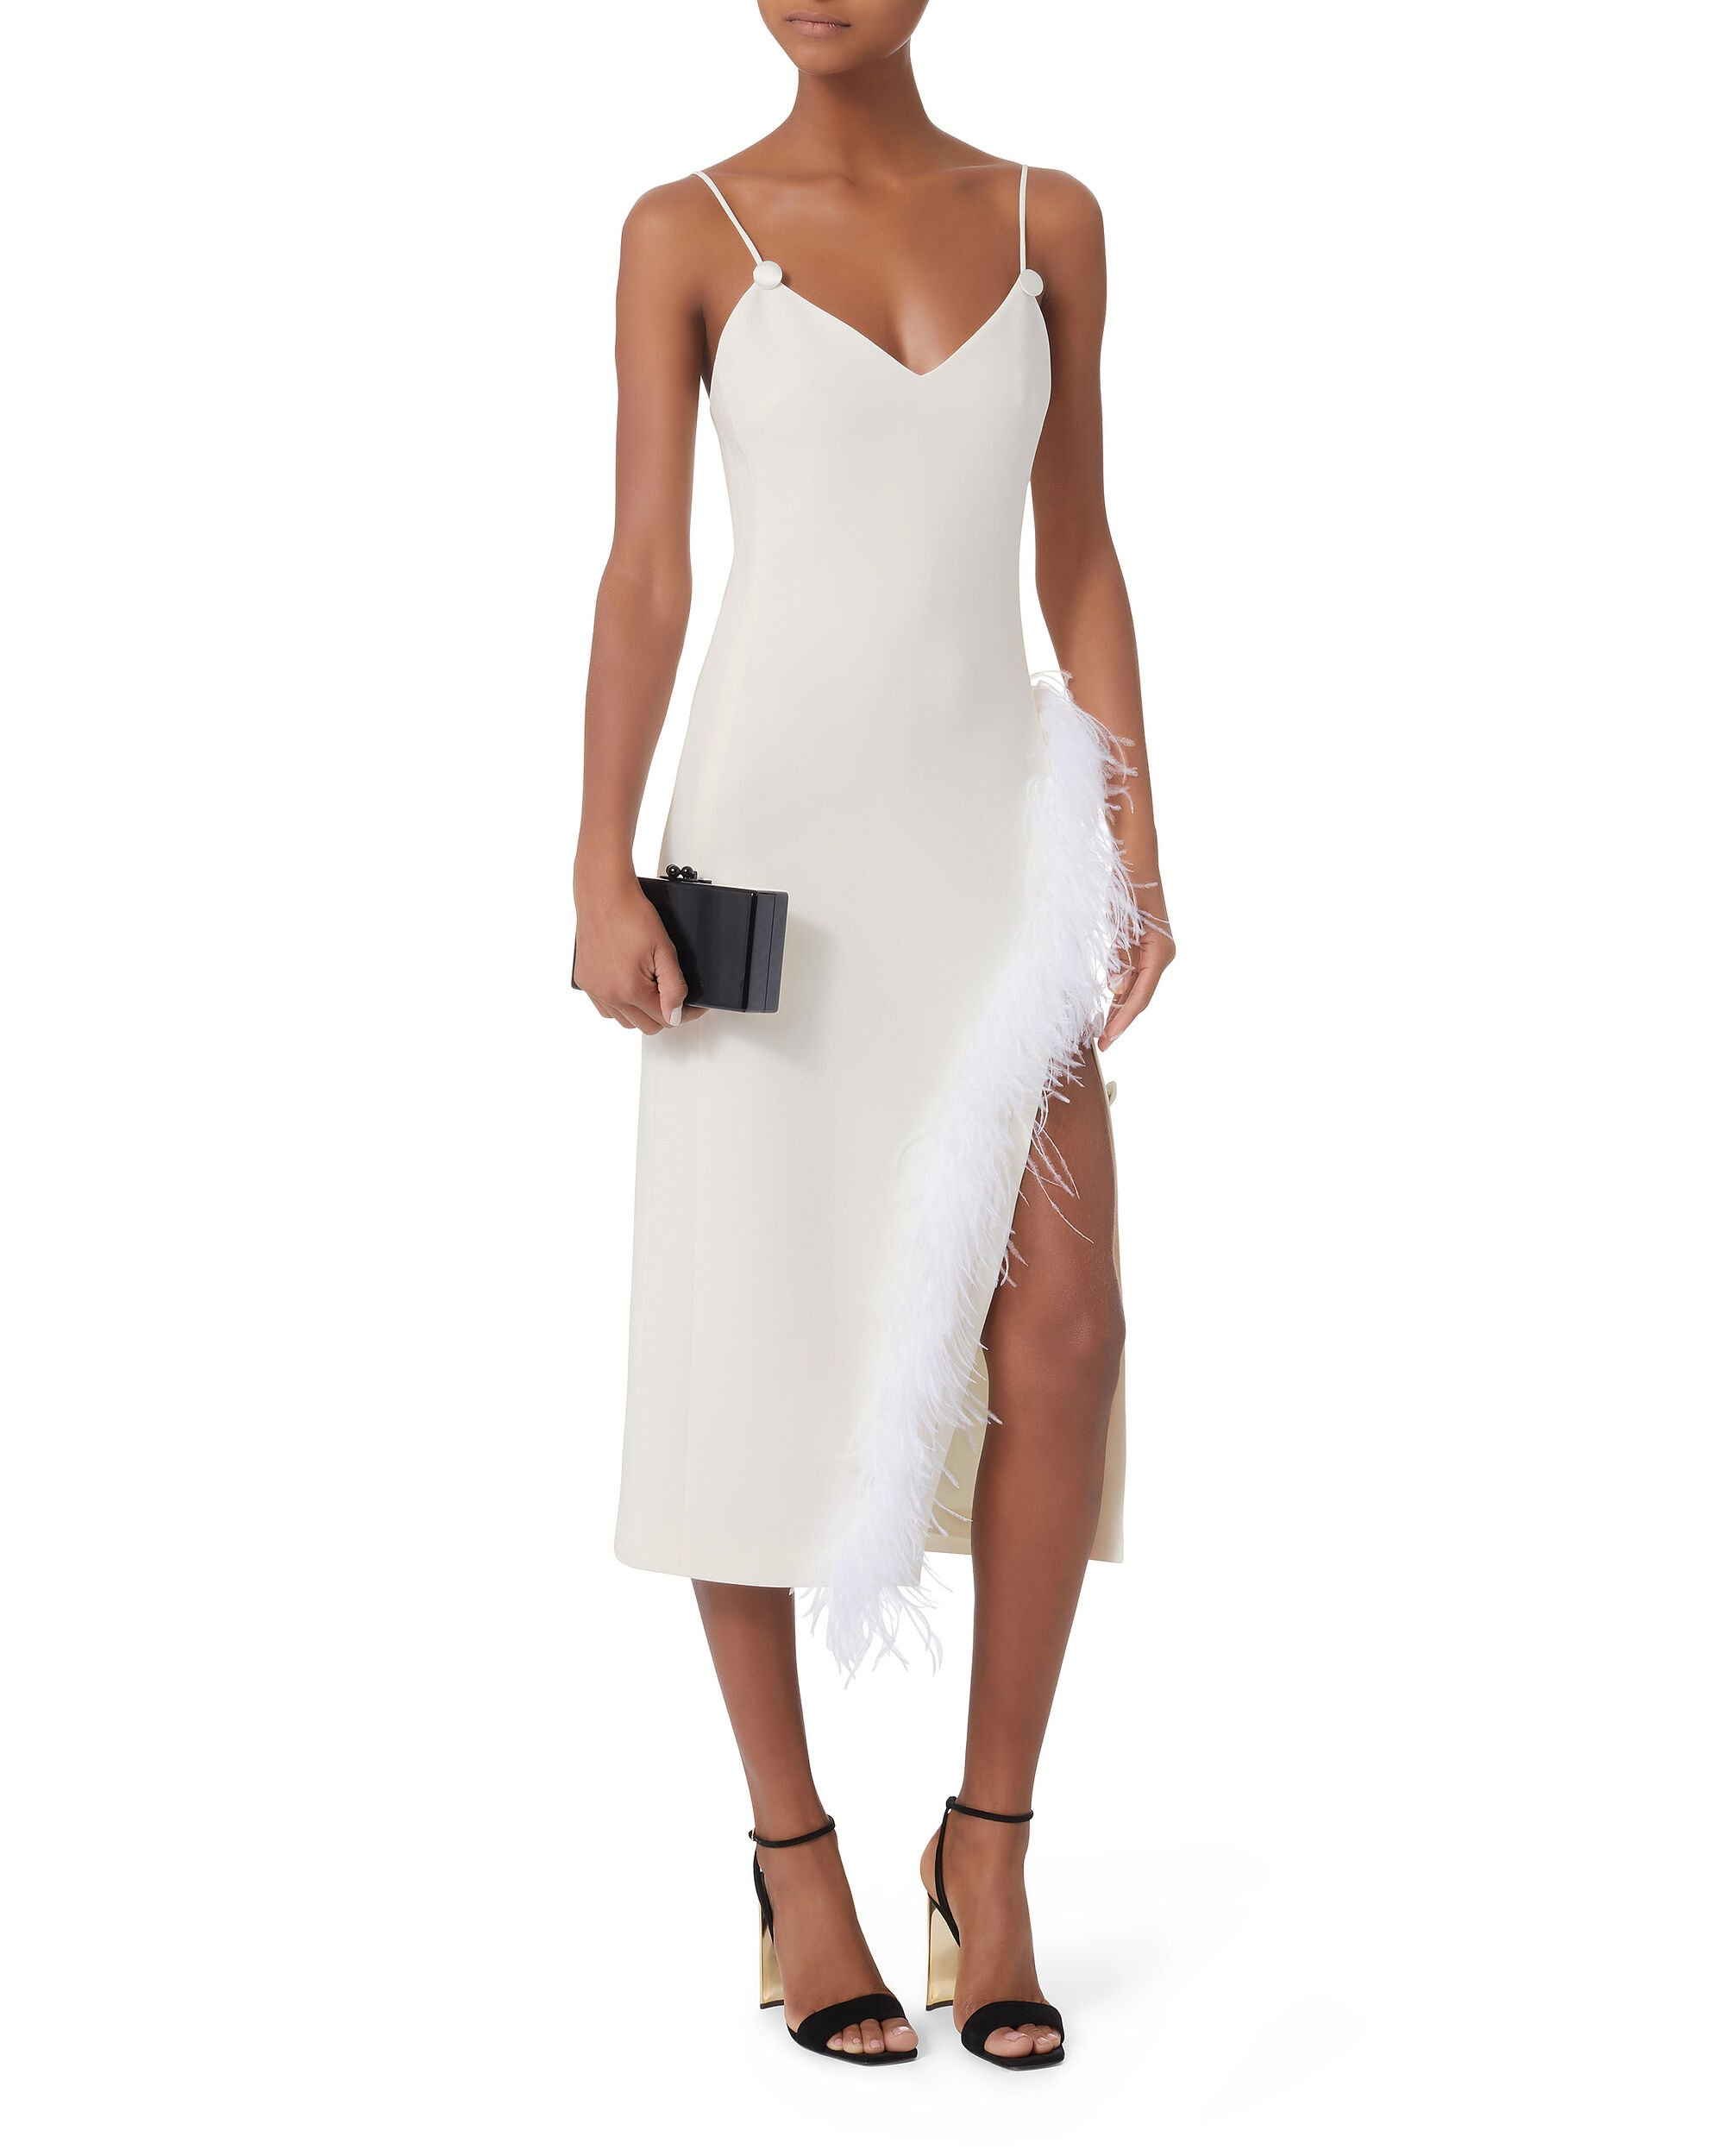 Cady Feather-Trimmed Midi Dress, WHITE, hi-res